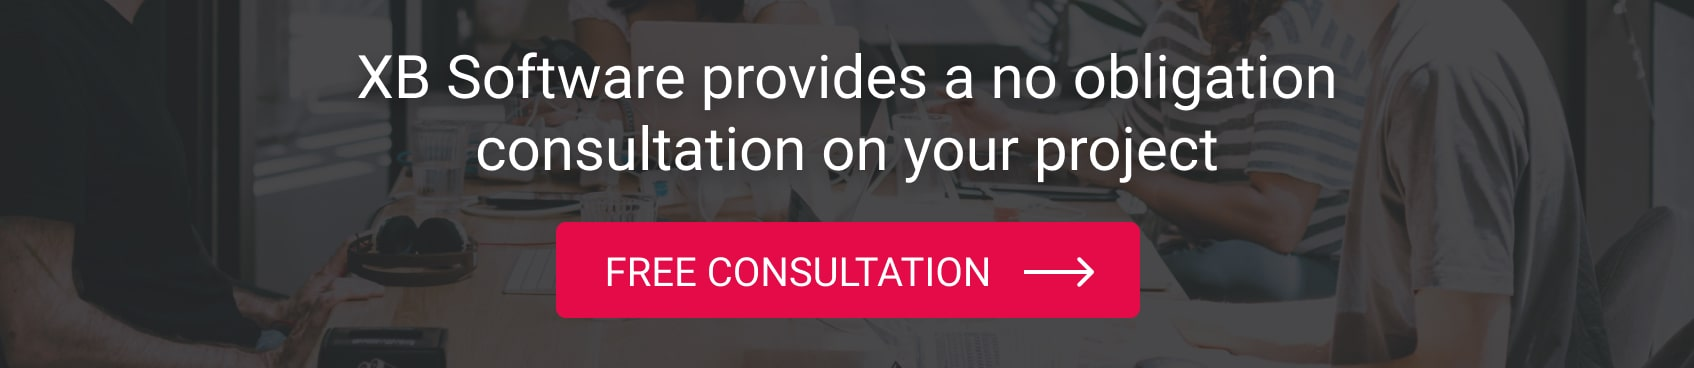 Get a no obligation consultation